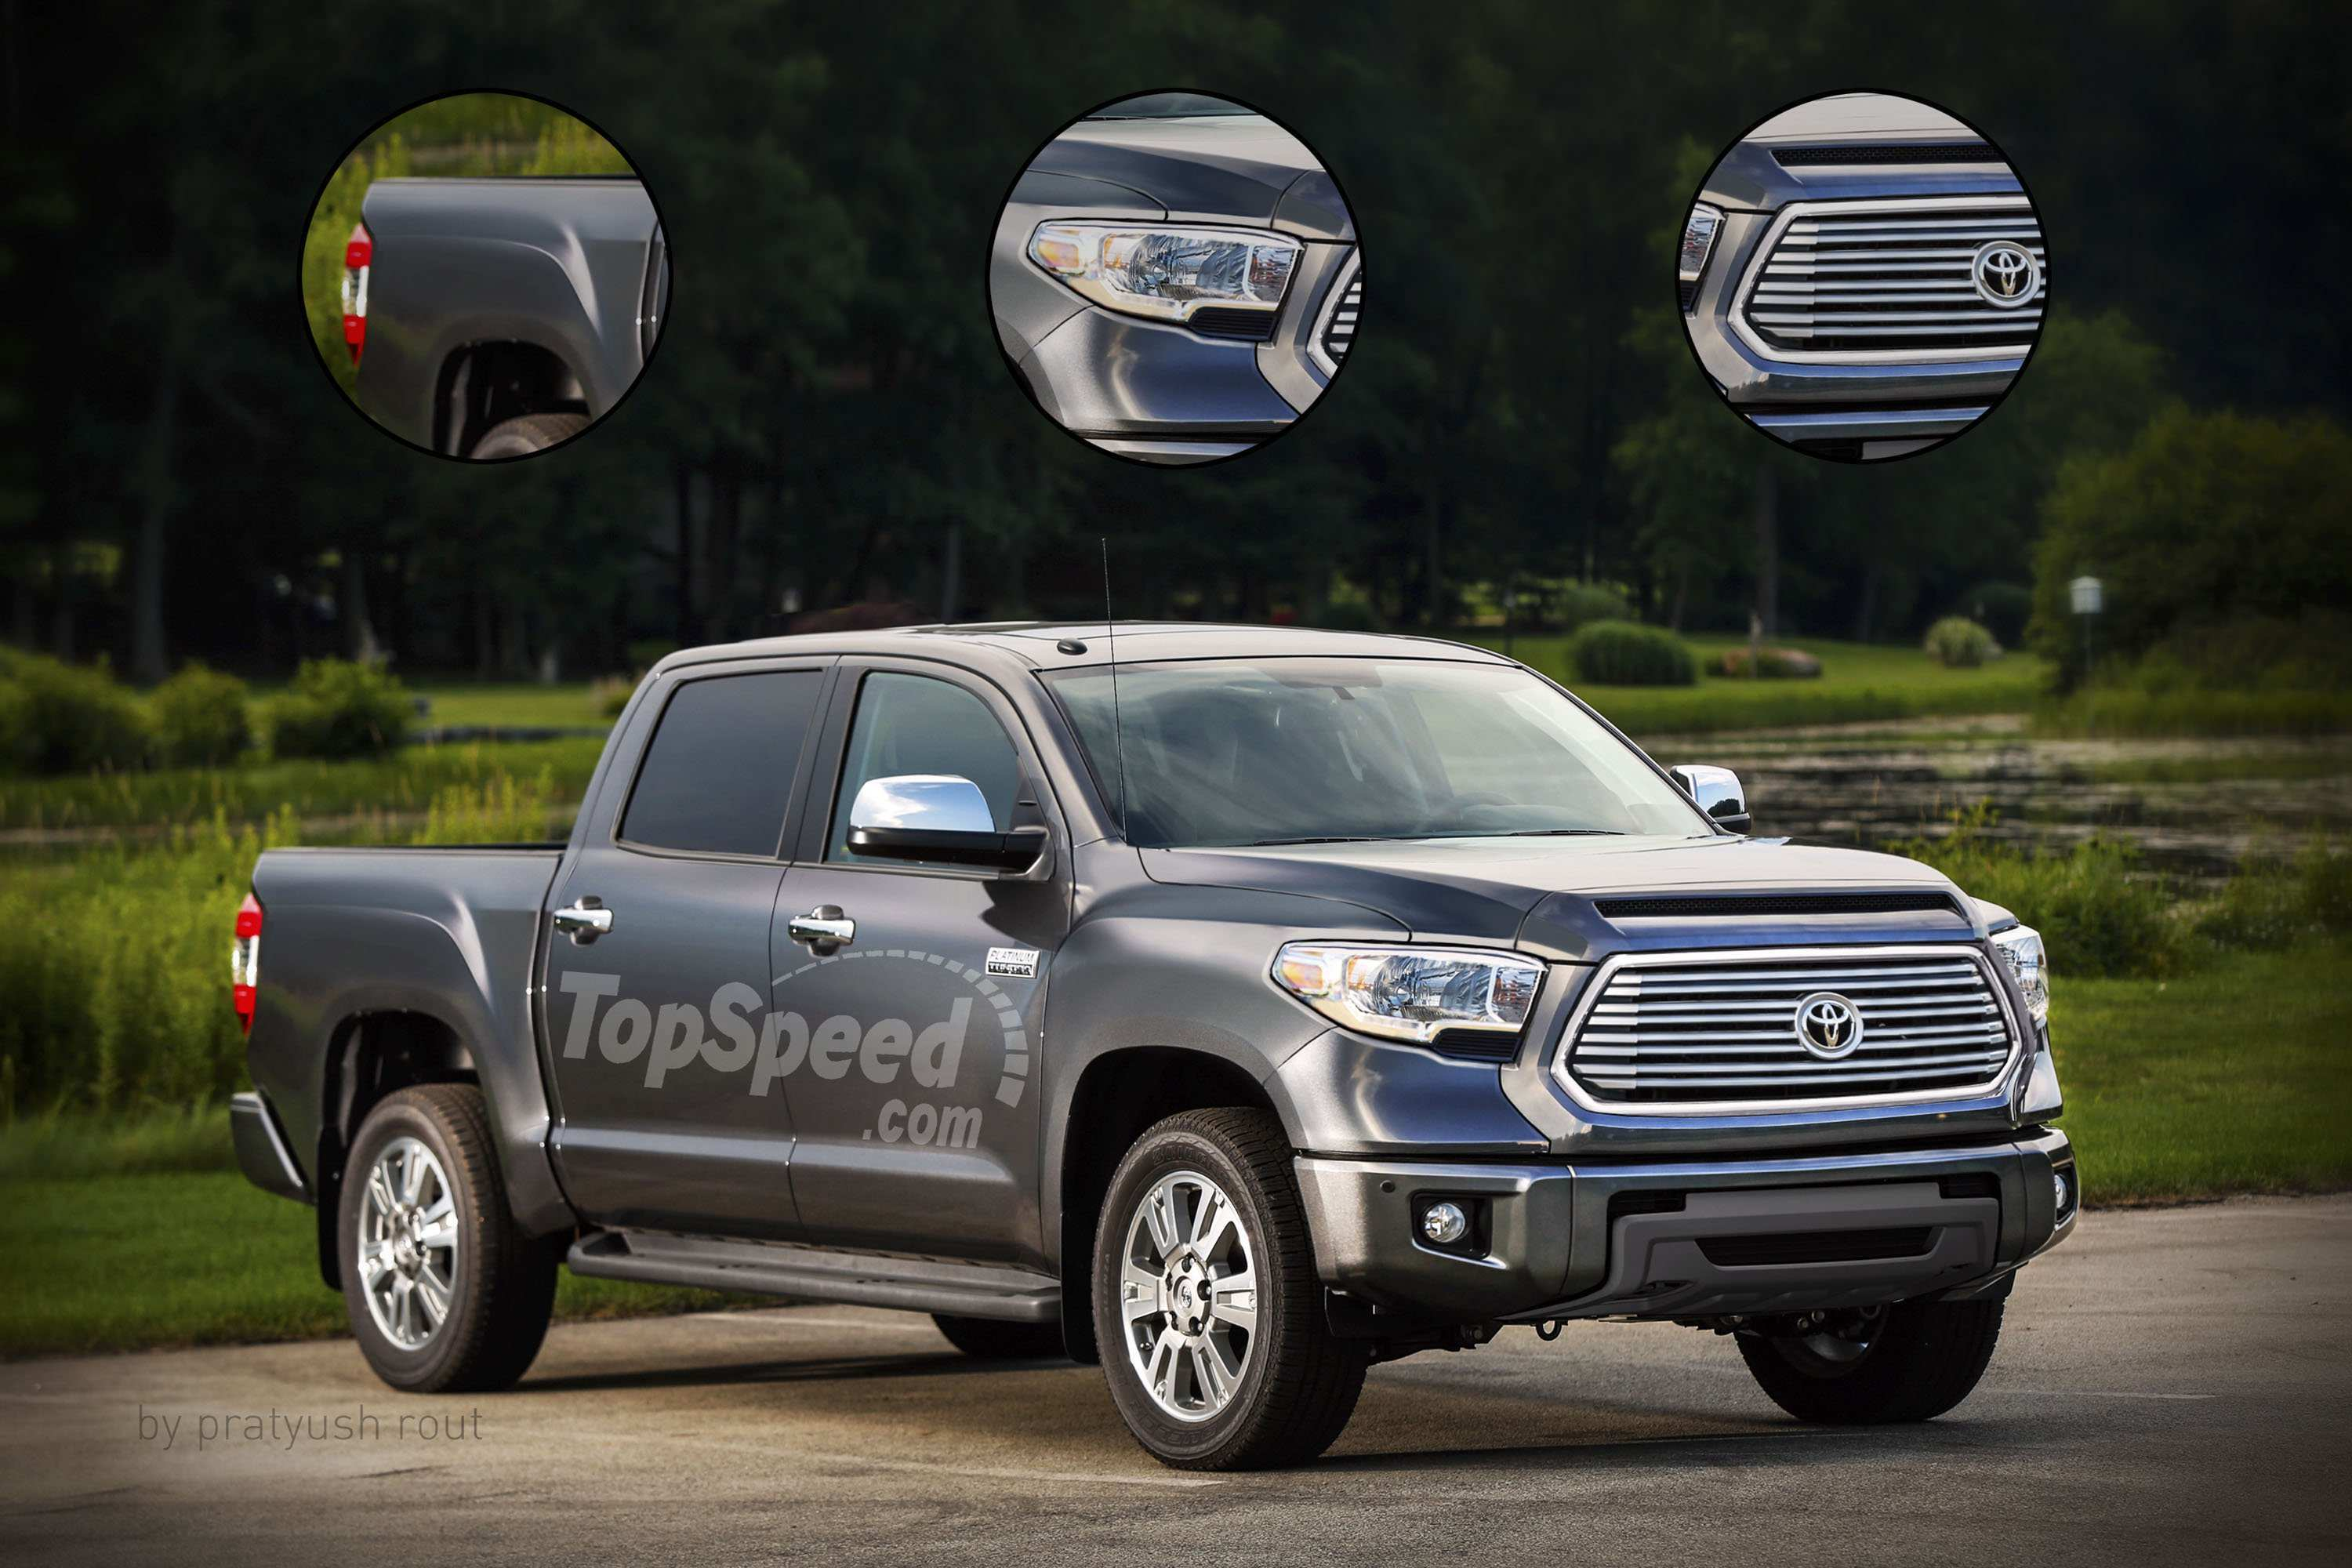 32 Gallery of 2019 Toyota Tundra Redesign Spy Shoot for 2019 Toyota Tundra Redesign